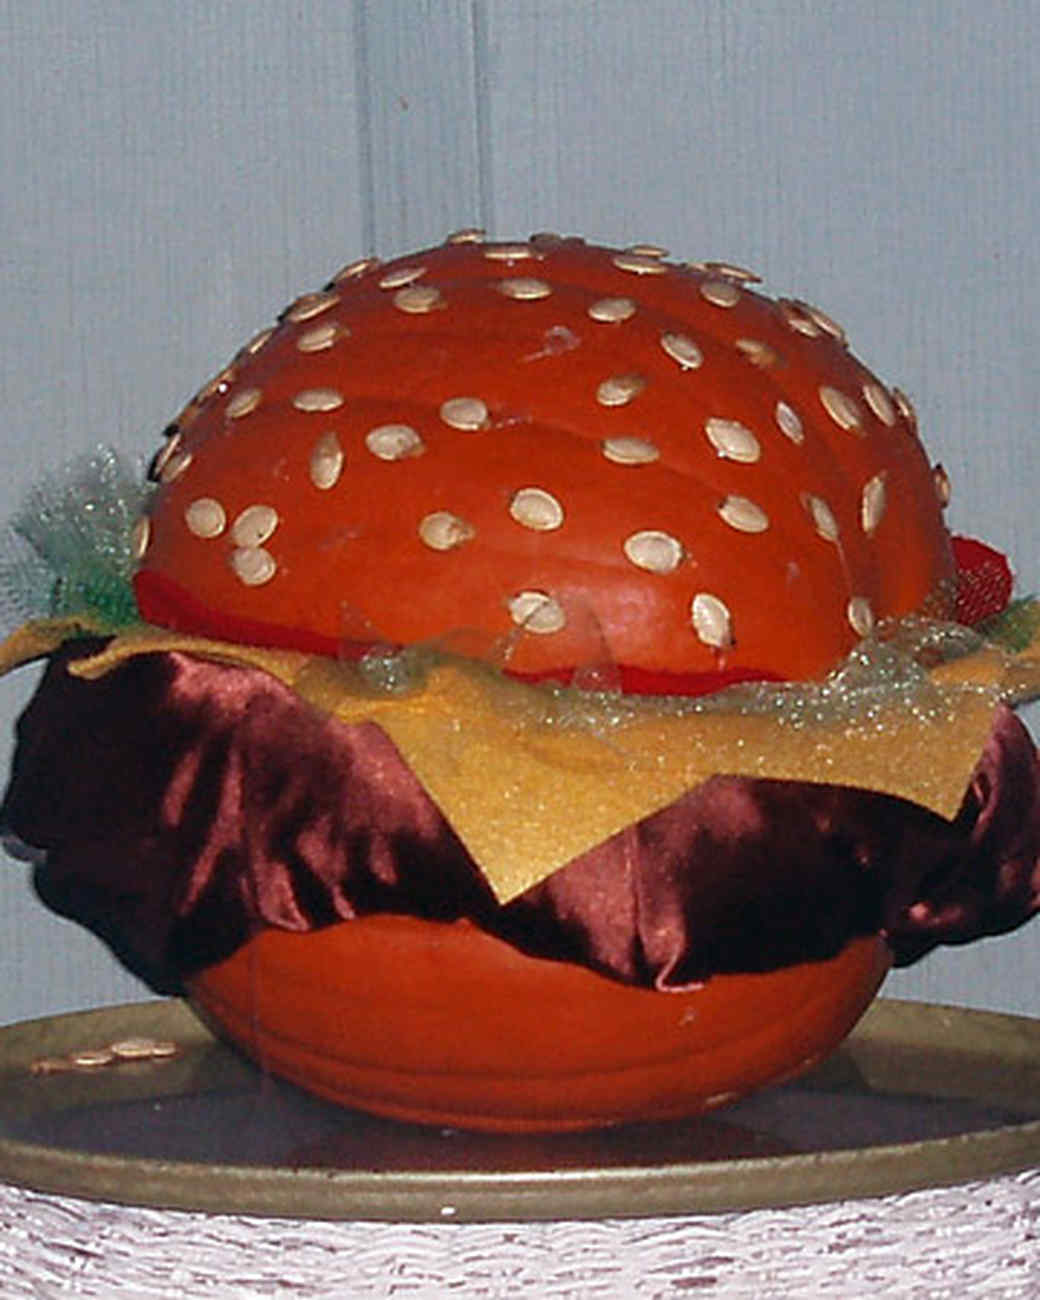 pumpkinburger.jpg